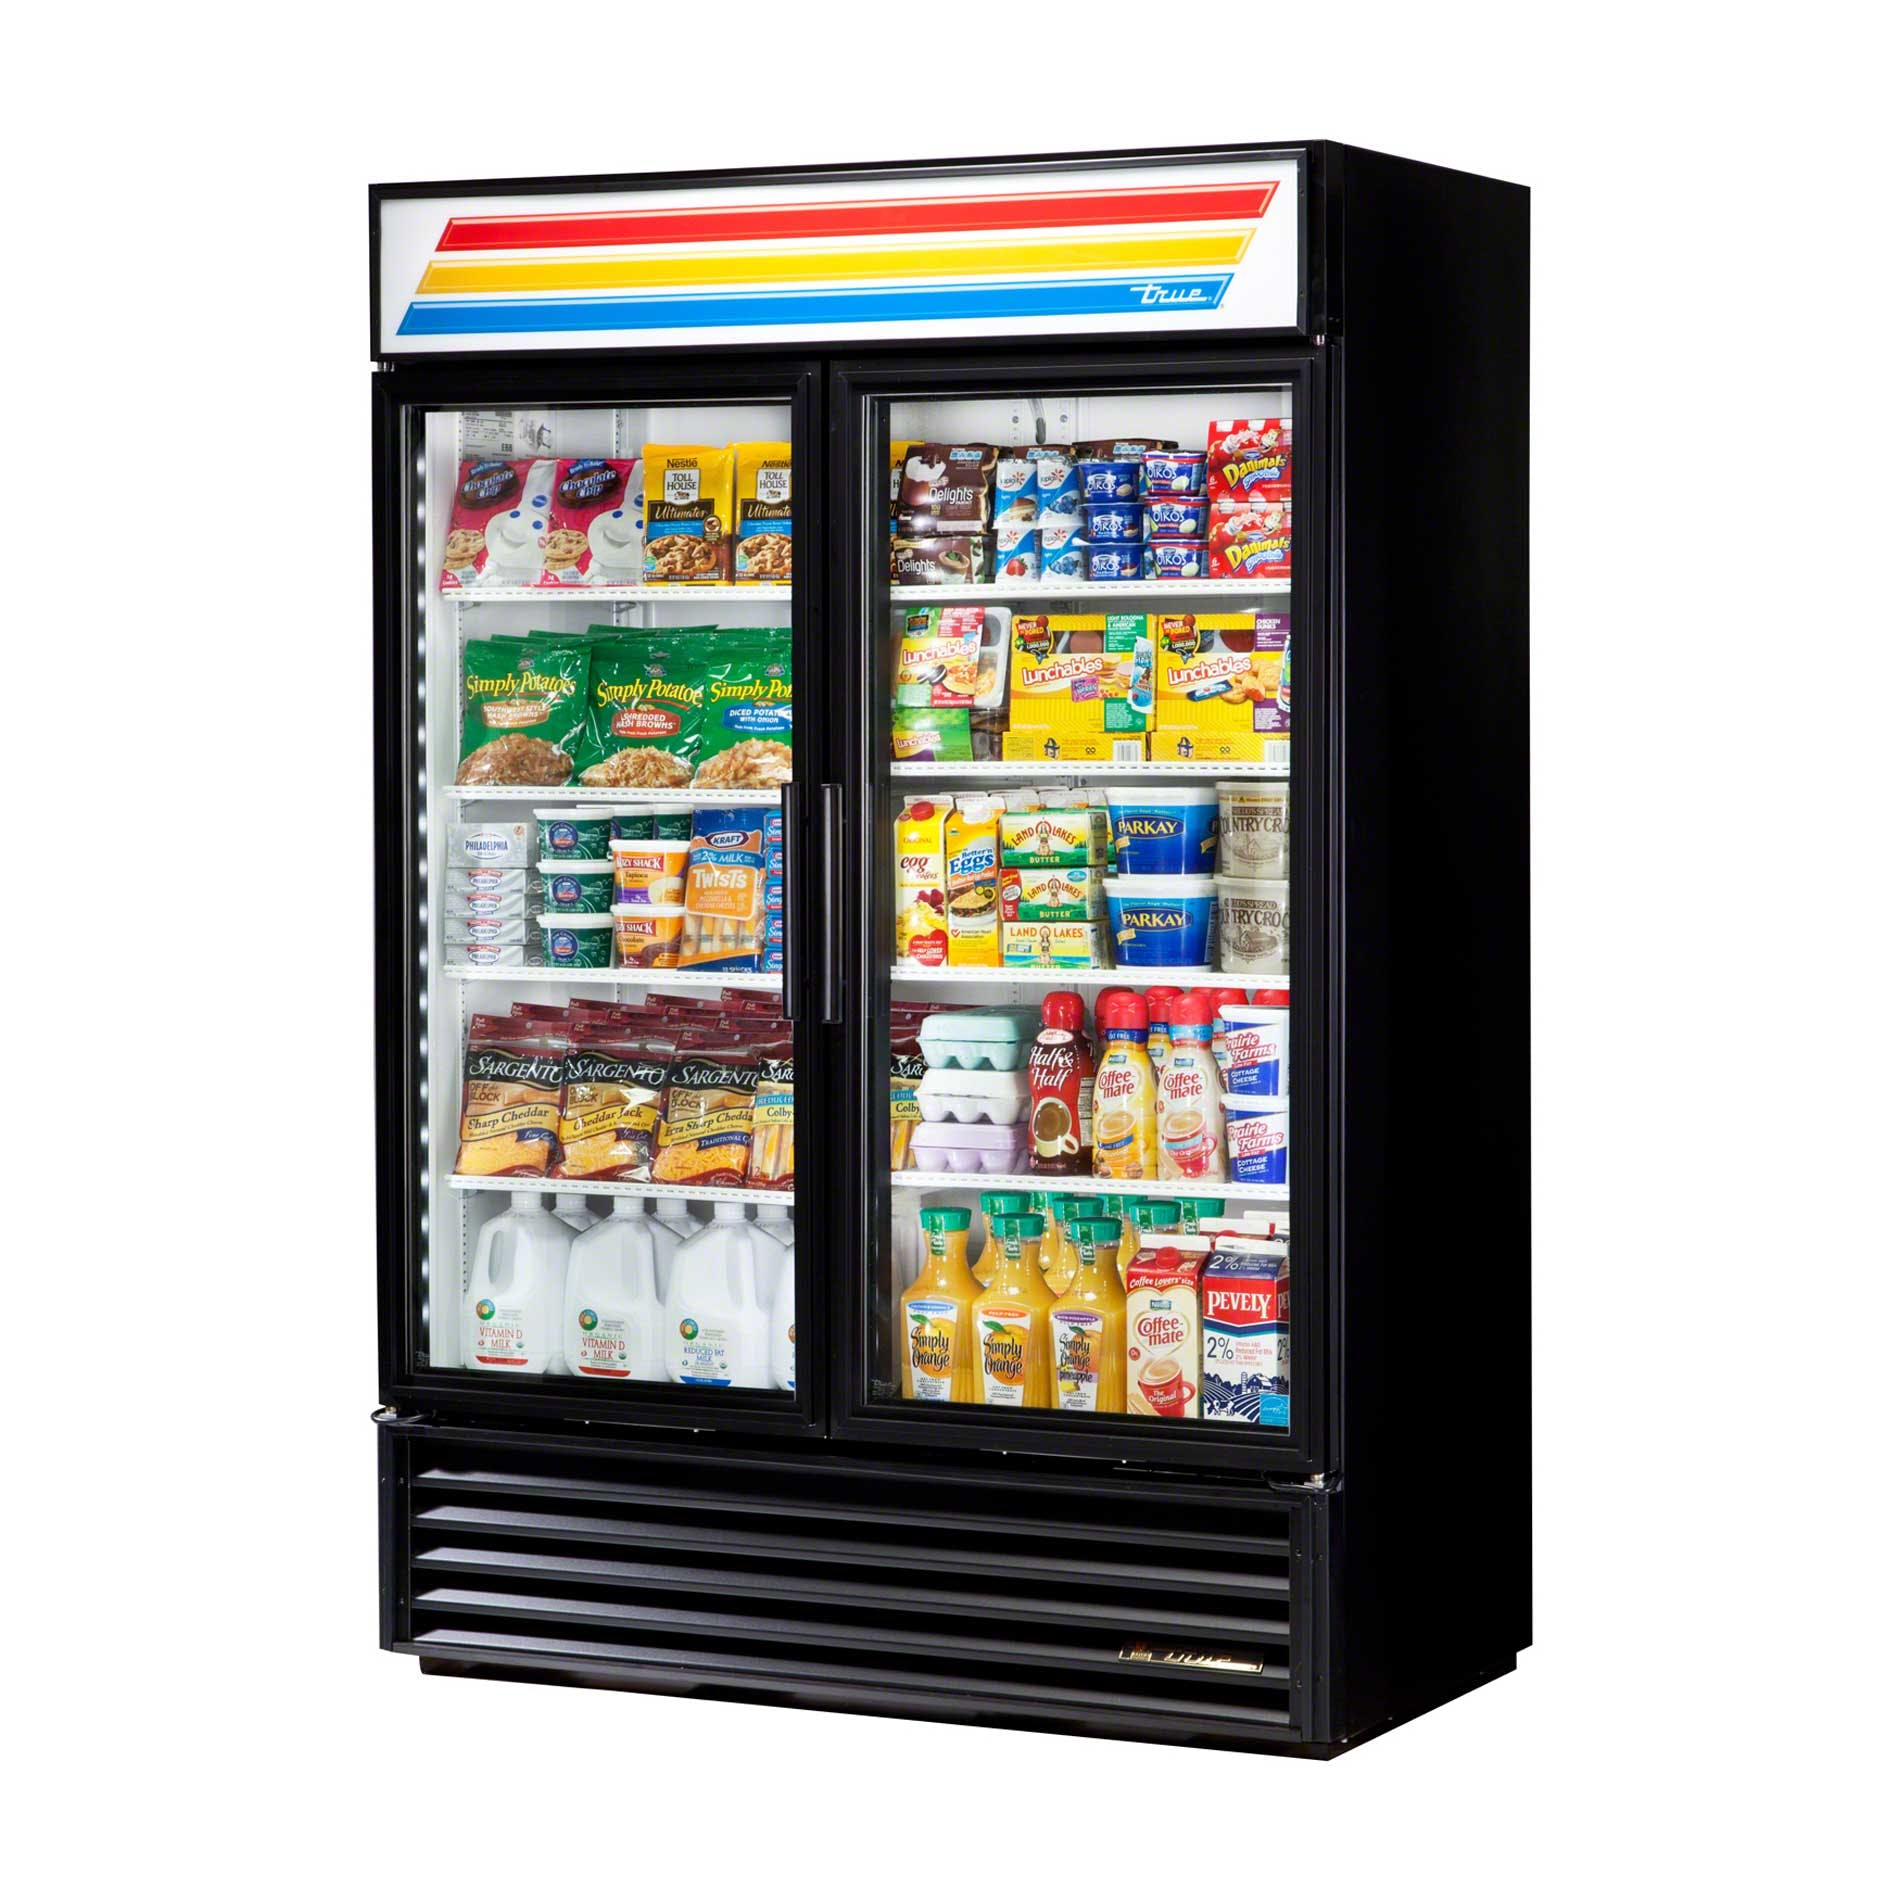 "True - GDM-49-RC-LD 55"" Glass Swing Door Merchandiser Refrigerator LED Commercial refrigerator sold by Food Service Warehouse"